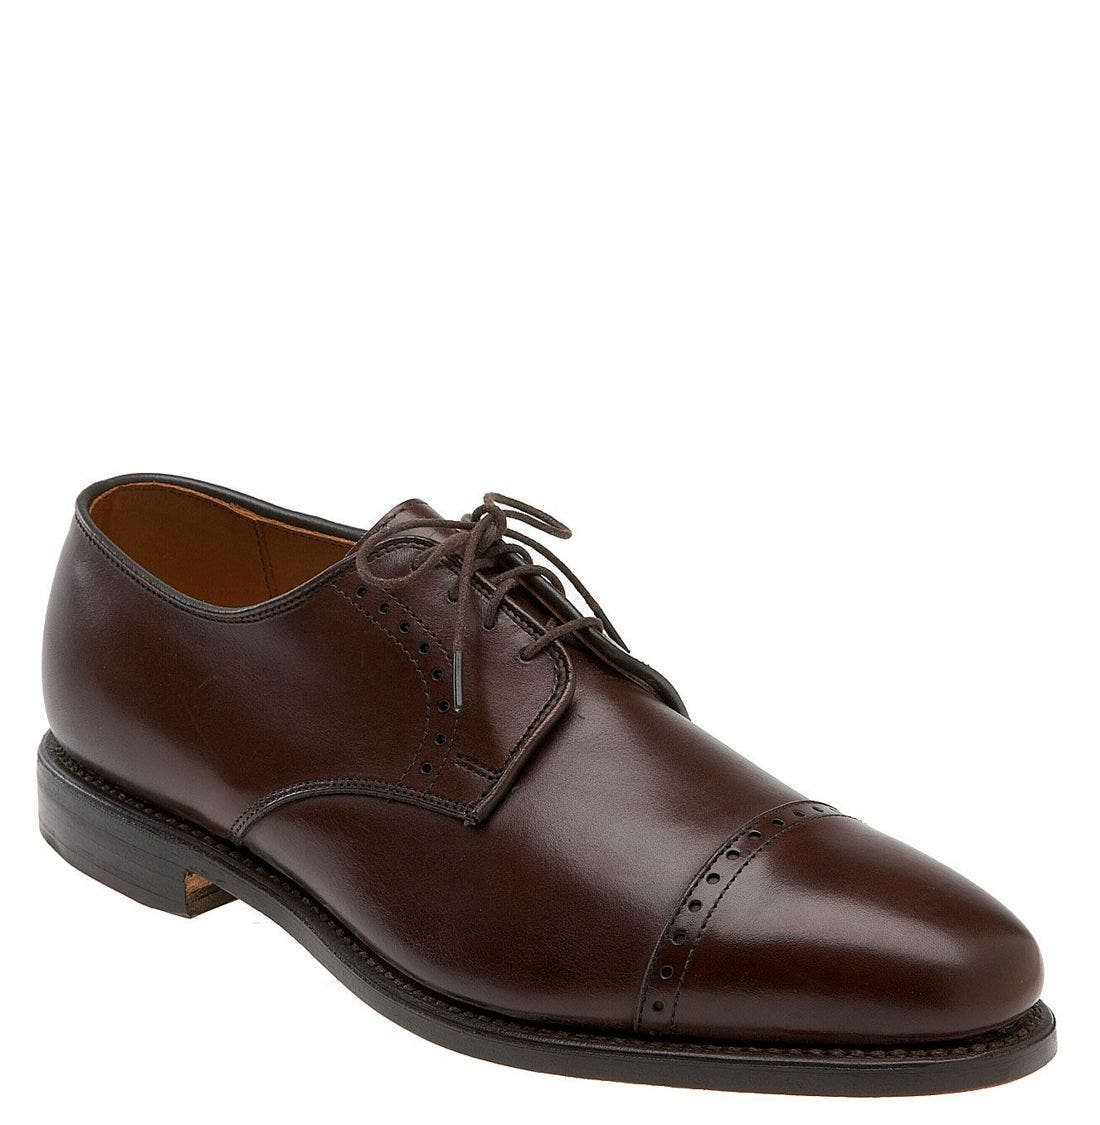 Alternate Image 1 Selected - Allen Edmonds 'Clifton' Blucher (Men)